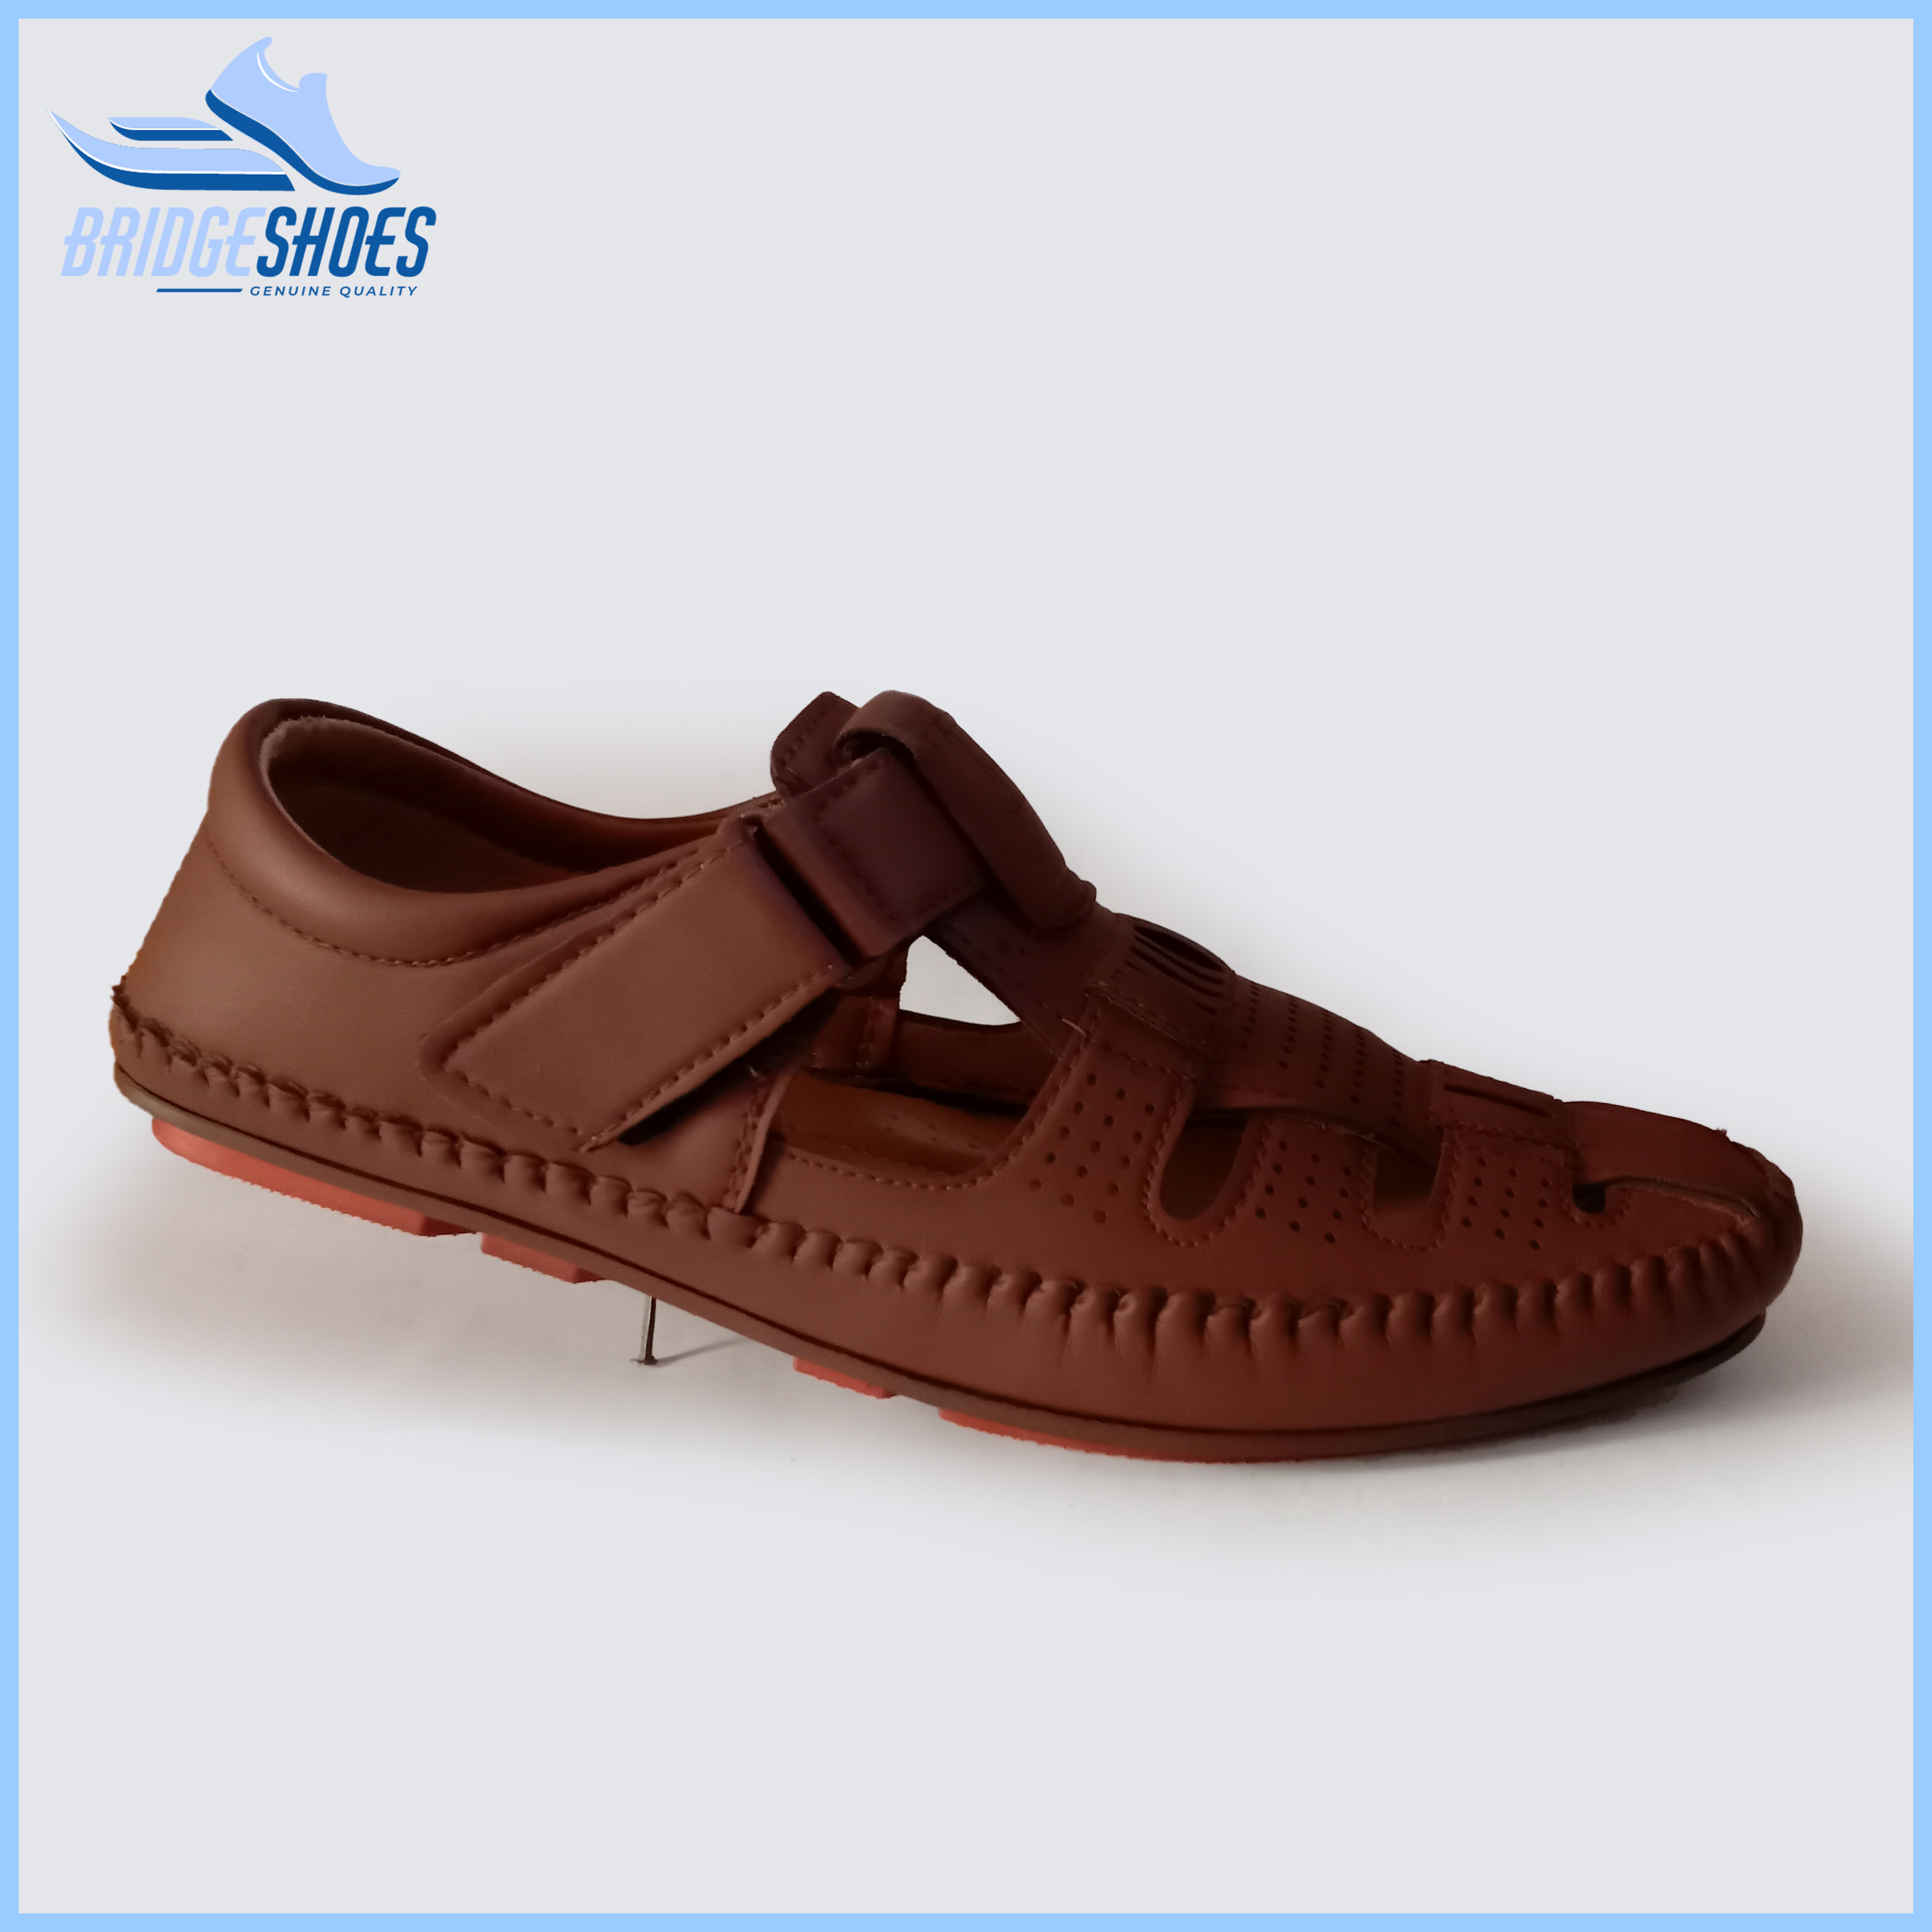 Shoes for men-Stylish sneaker casual for men